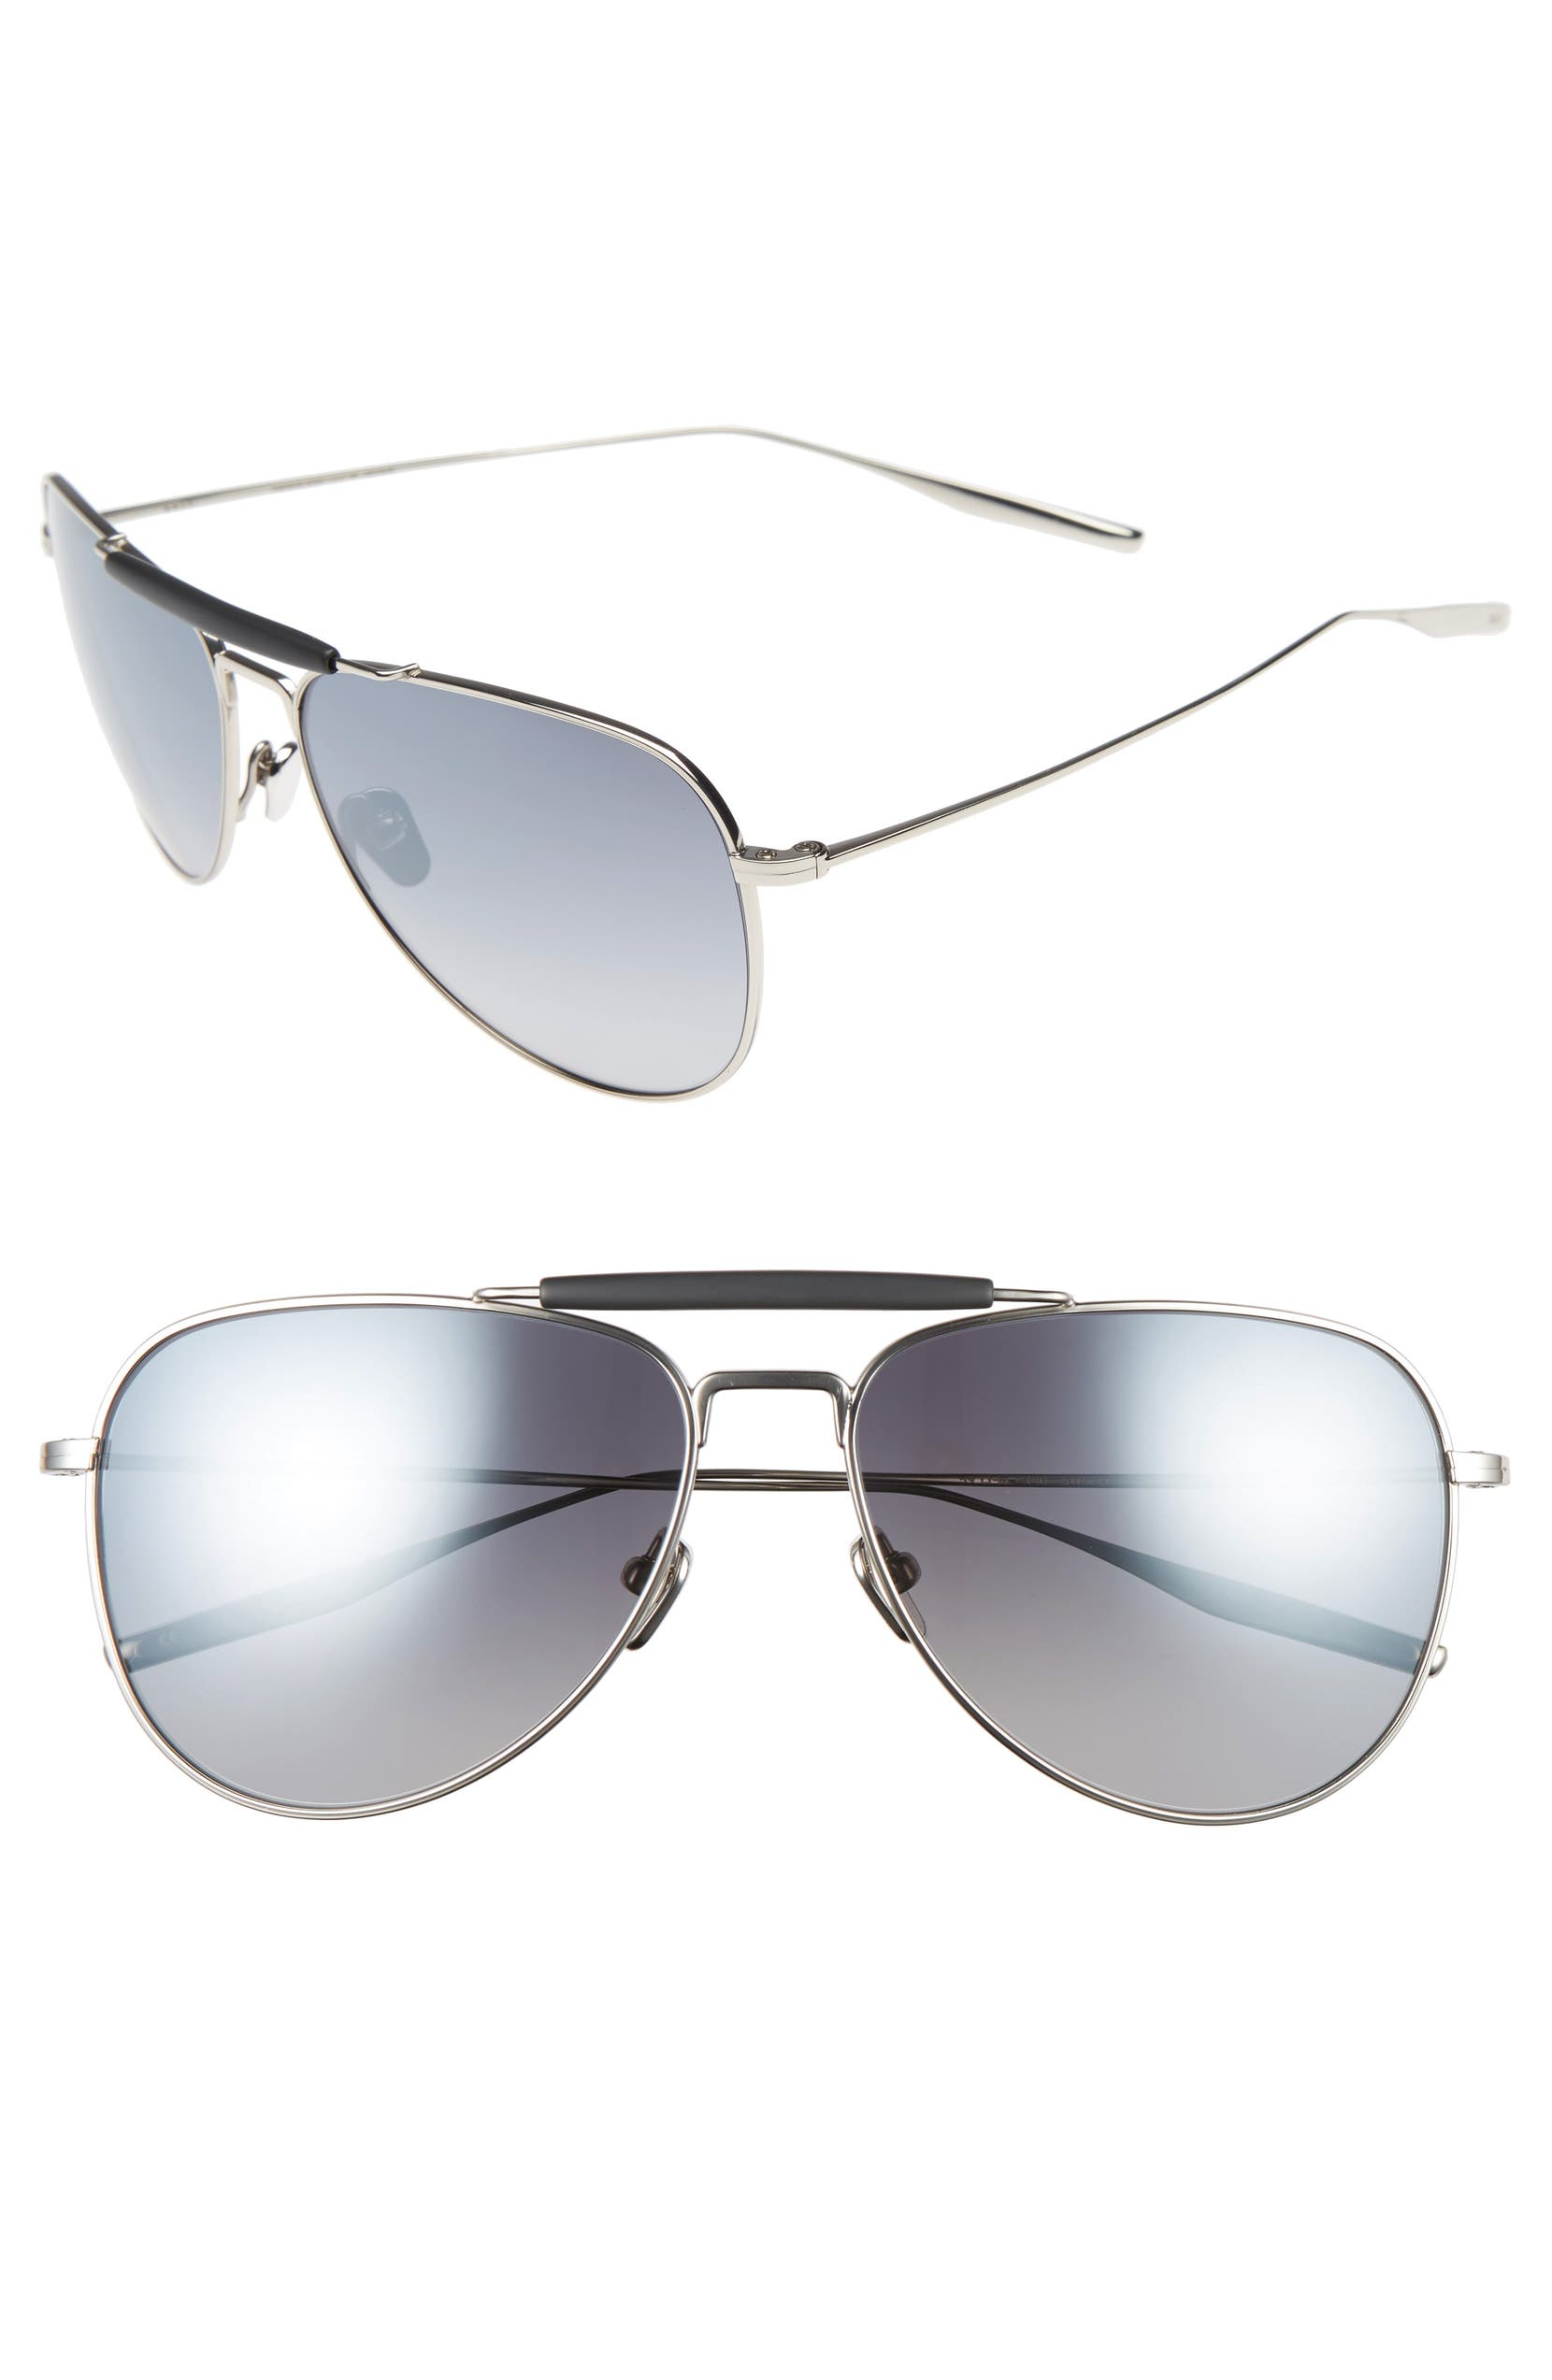 7a7c21297f84 SALT. Striker 59mm Aviator Sunglasses